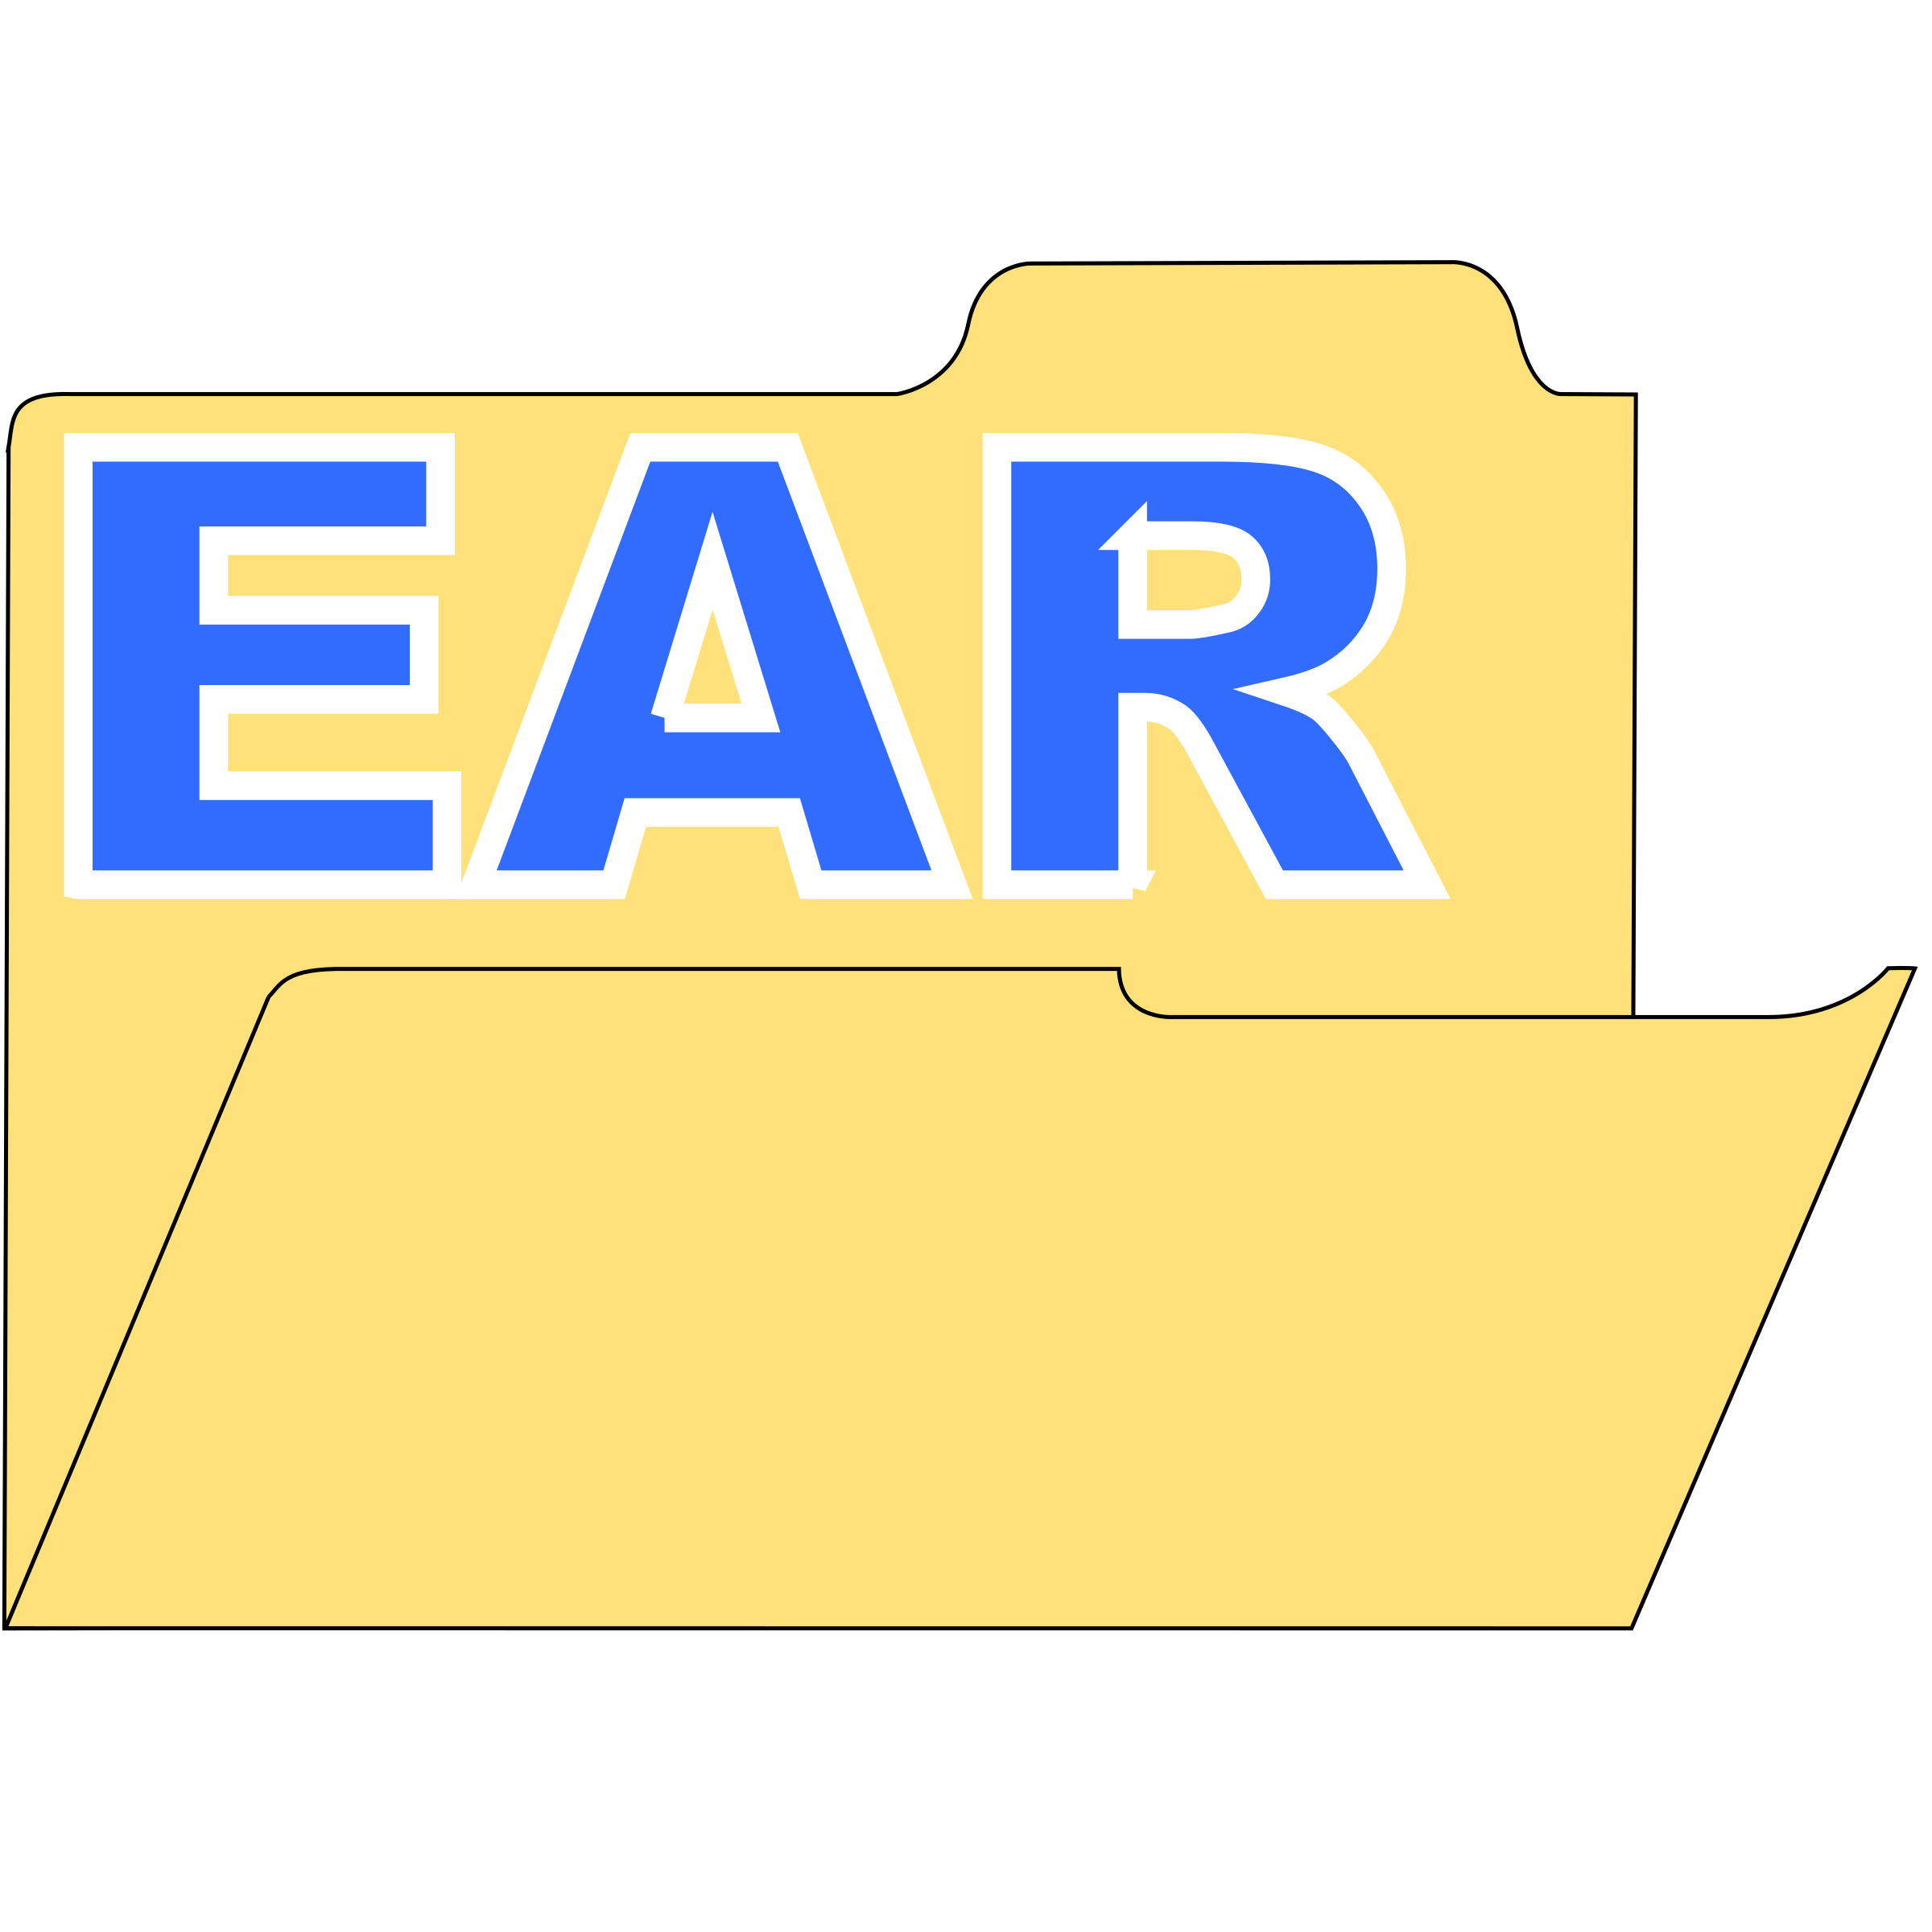 EAR Folder by computating